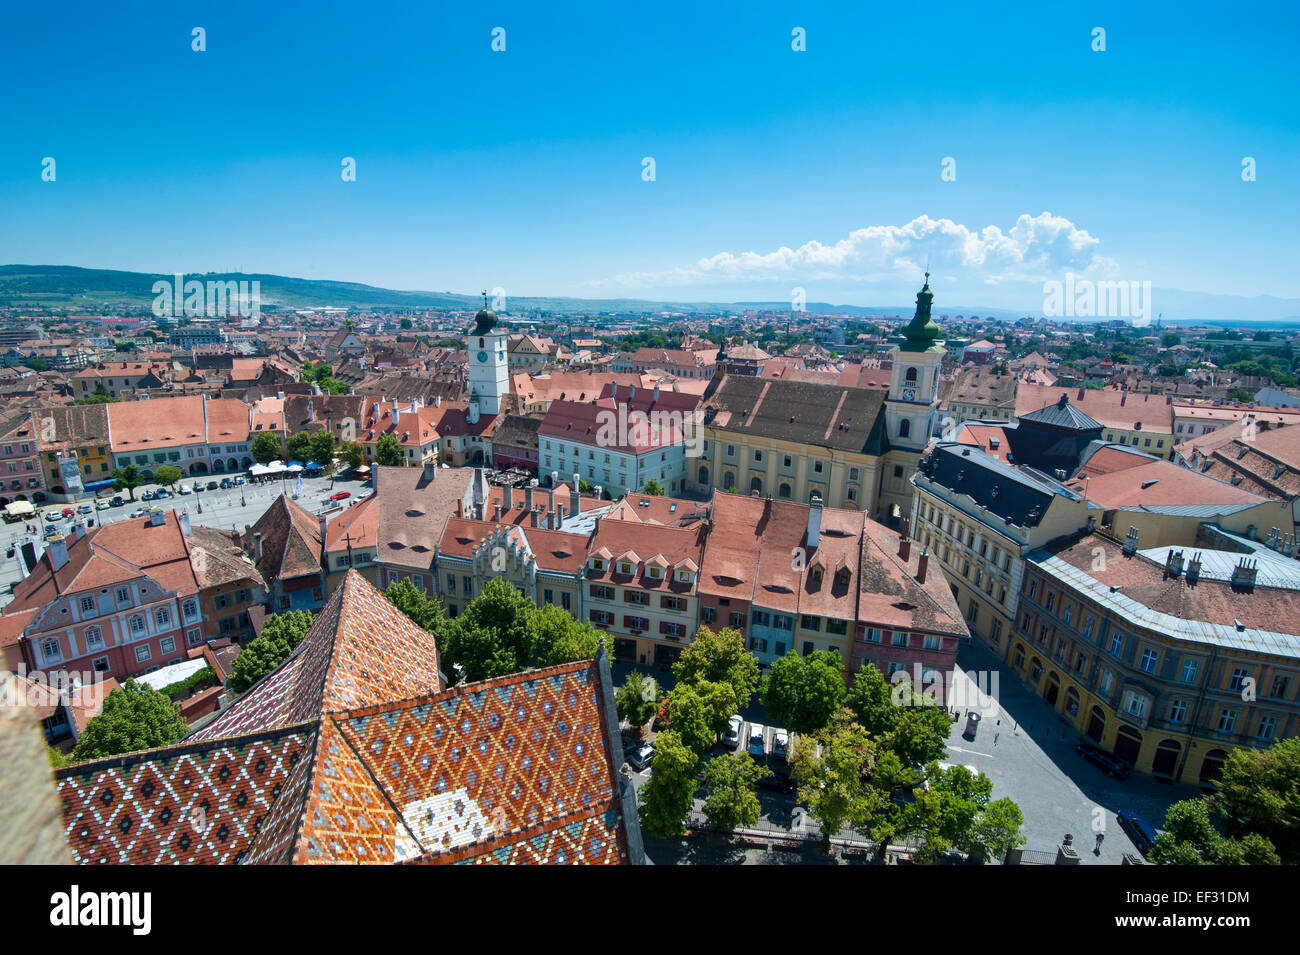 Overlooking the city, Sibiu, Romania - Stock Image